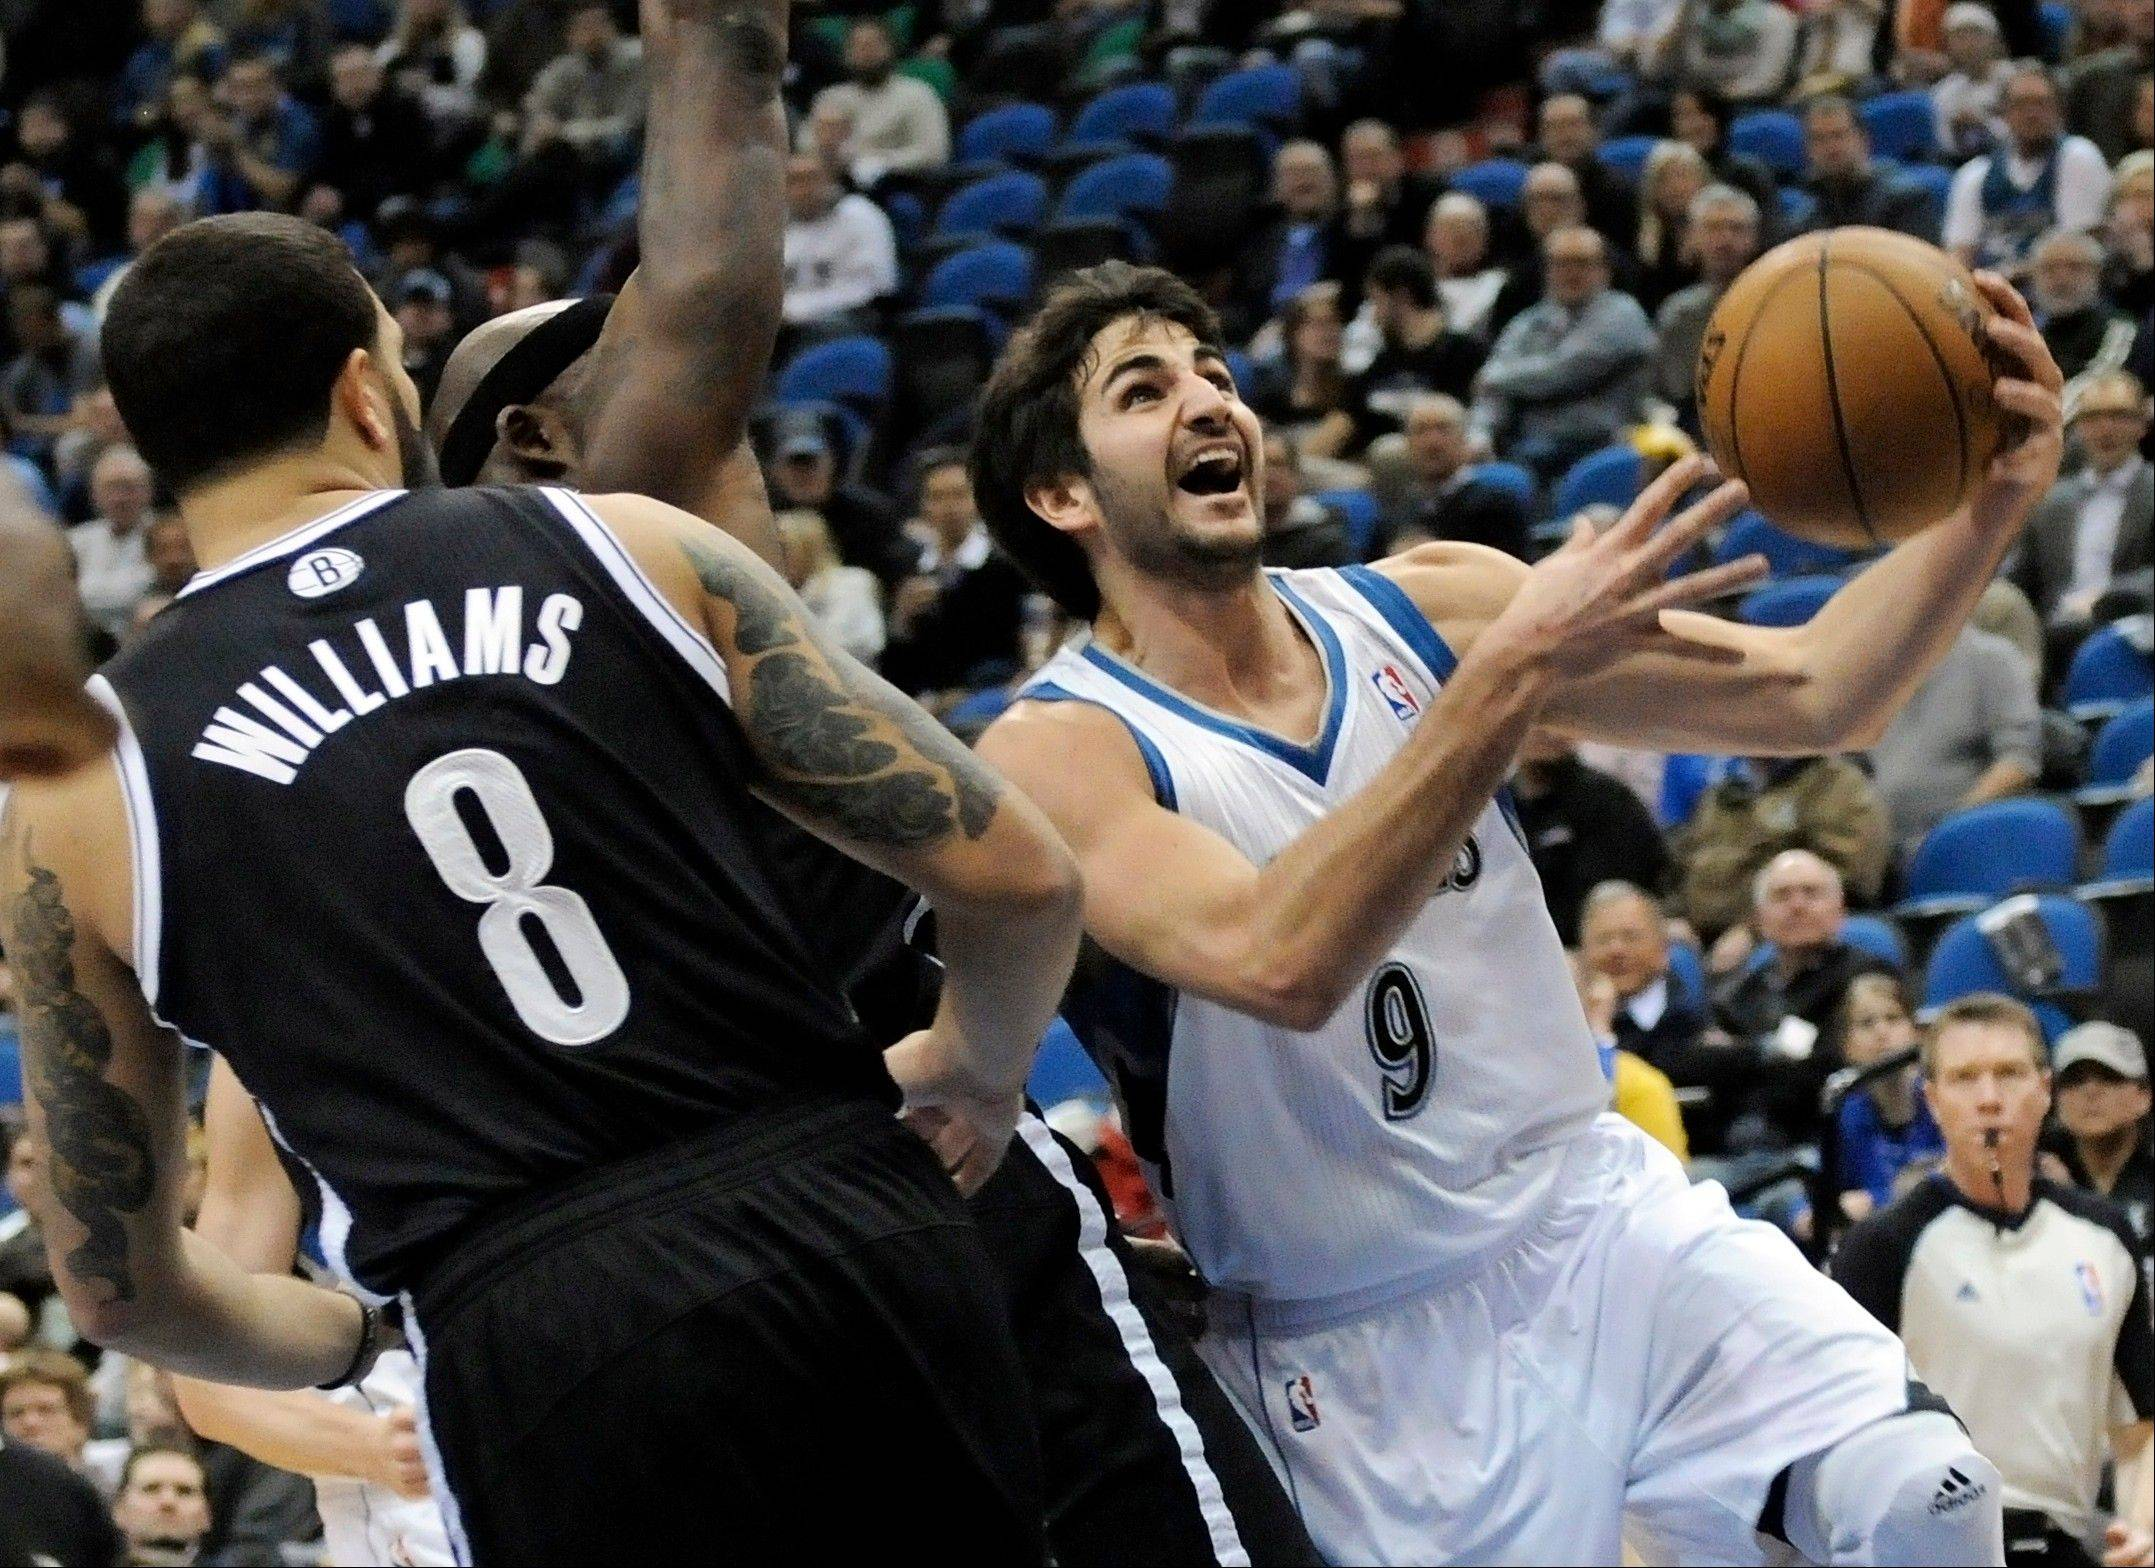 Minnesota Timberwolves' Ricky Rubio, right, of Spain, lays up past Brooklyn Nets' Deron Williams in the first half of an NBA basketball game on Wednesday, Jan. 23, 2013, in Minneapolis.